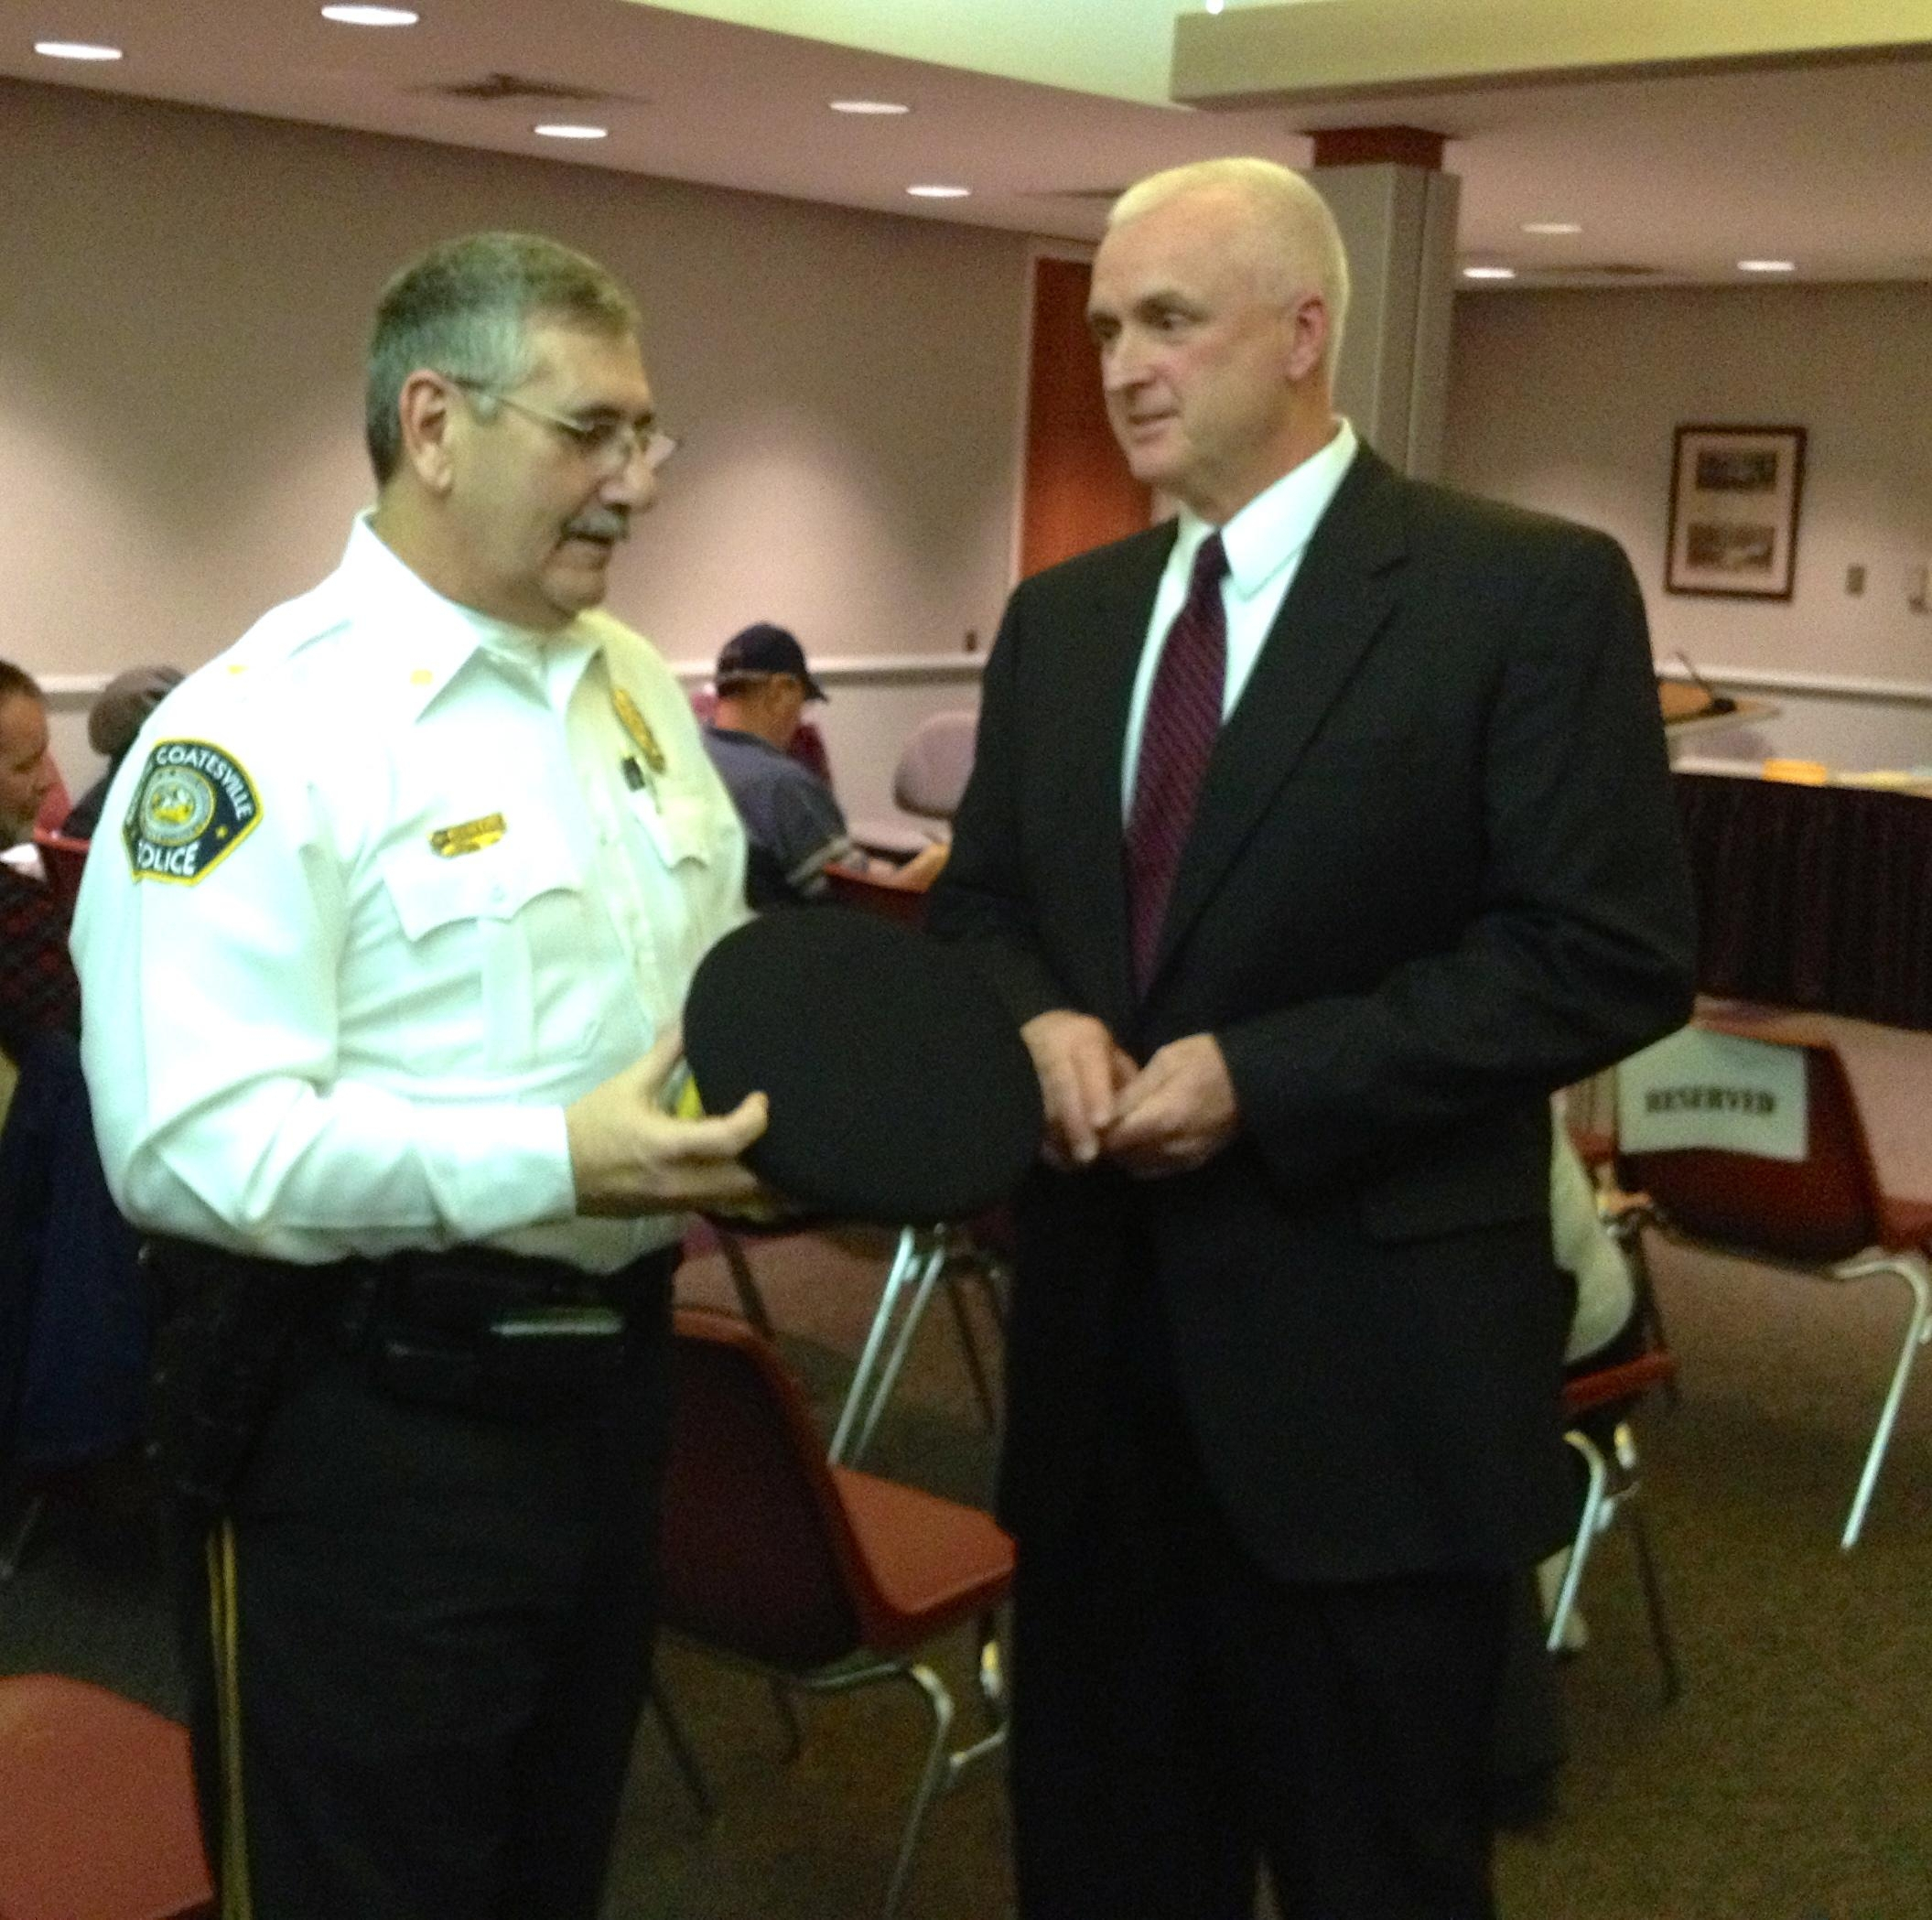 Chief Wilson congratulating Chief Lauffer (Coatesville PD)